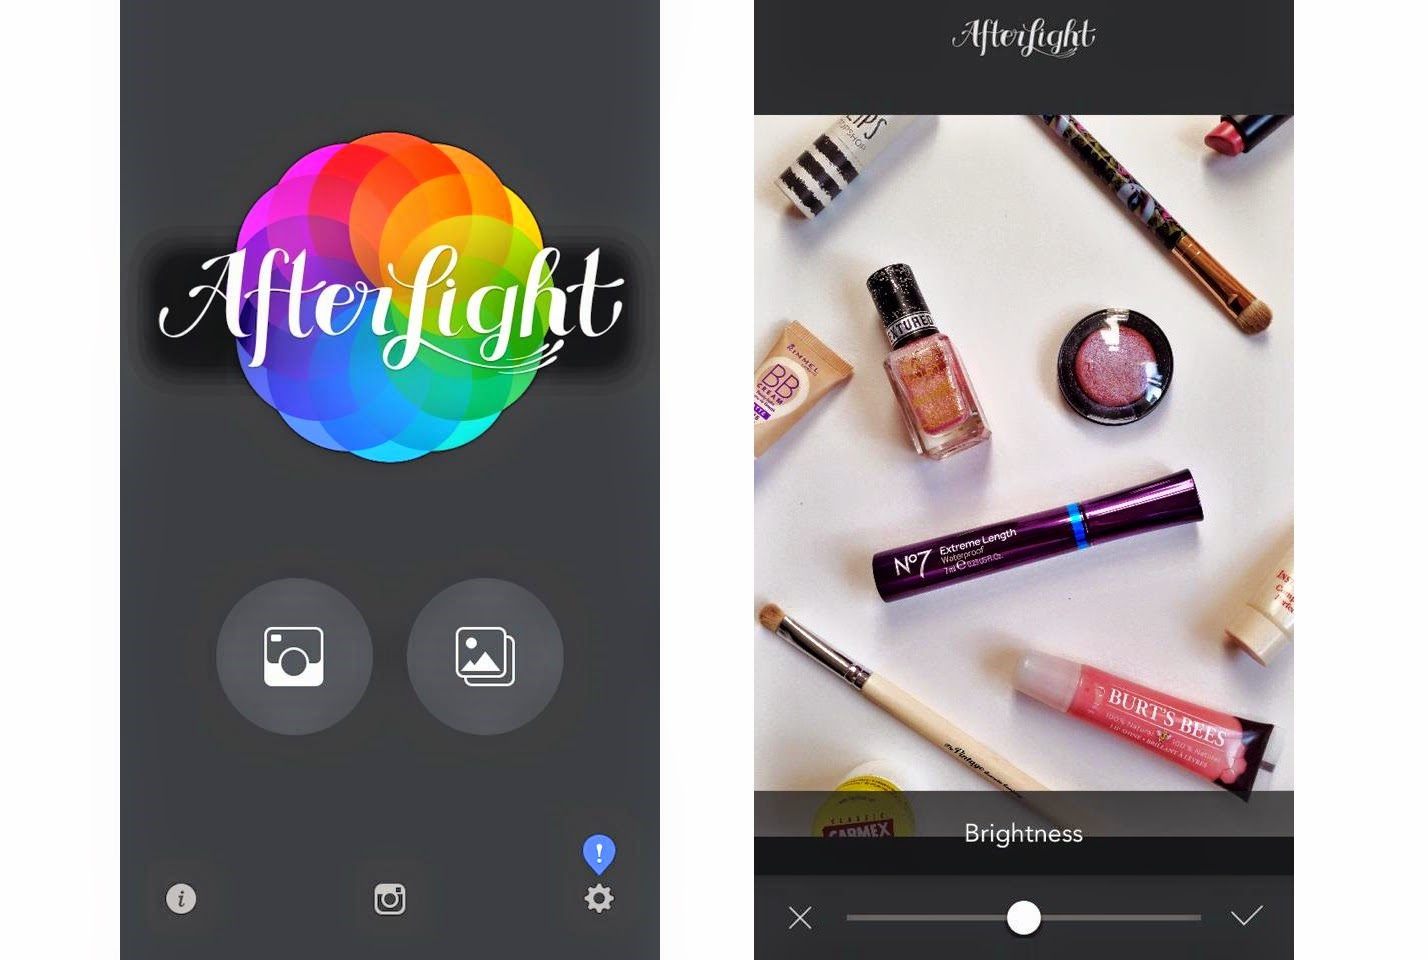 to the left, the after light app home screen. to the right a photograph of beauty products I am about to edit